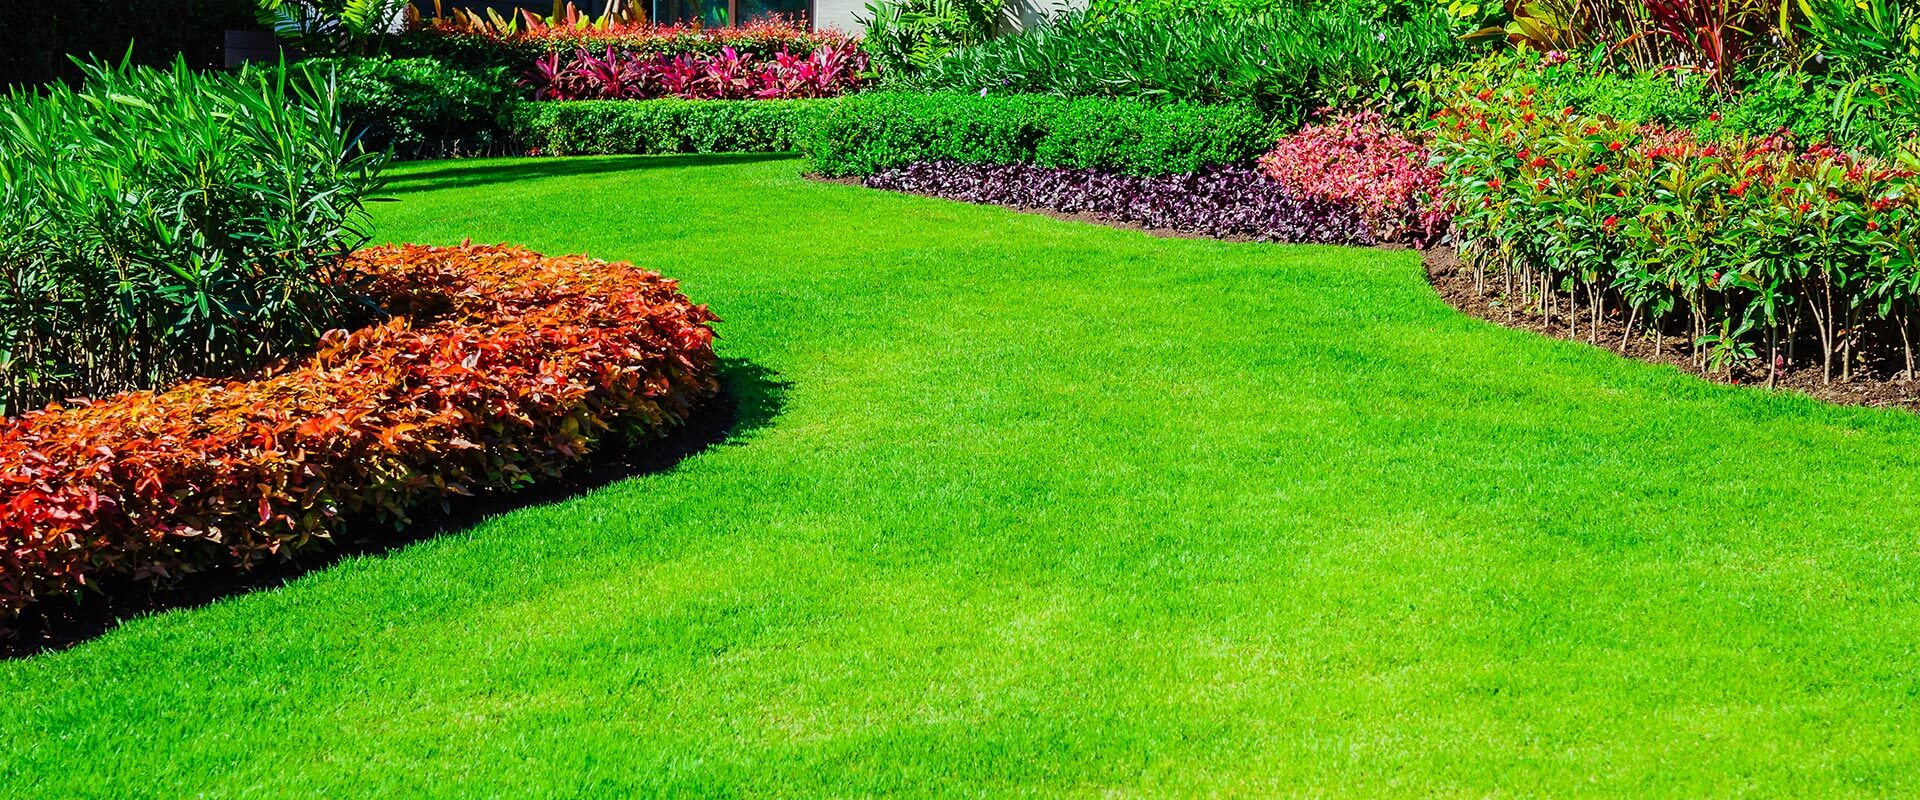 Johns Creek Lawn Care & Maintenance Alpharetta, GA